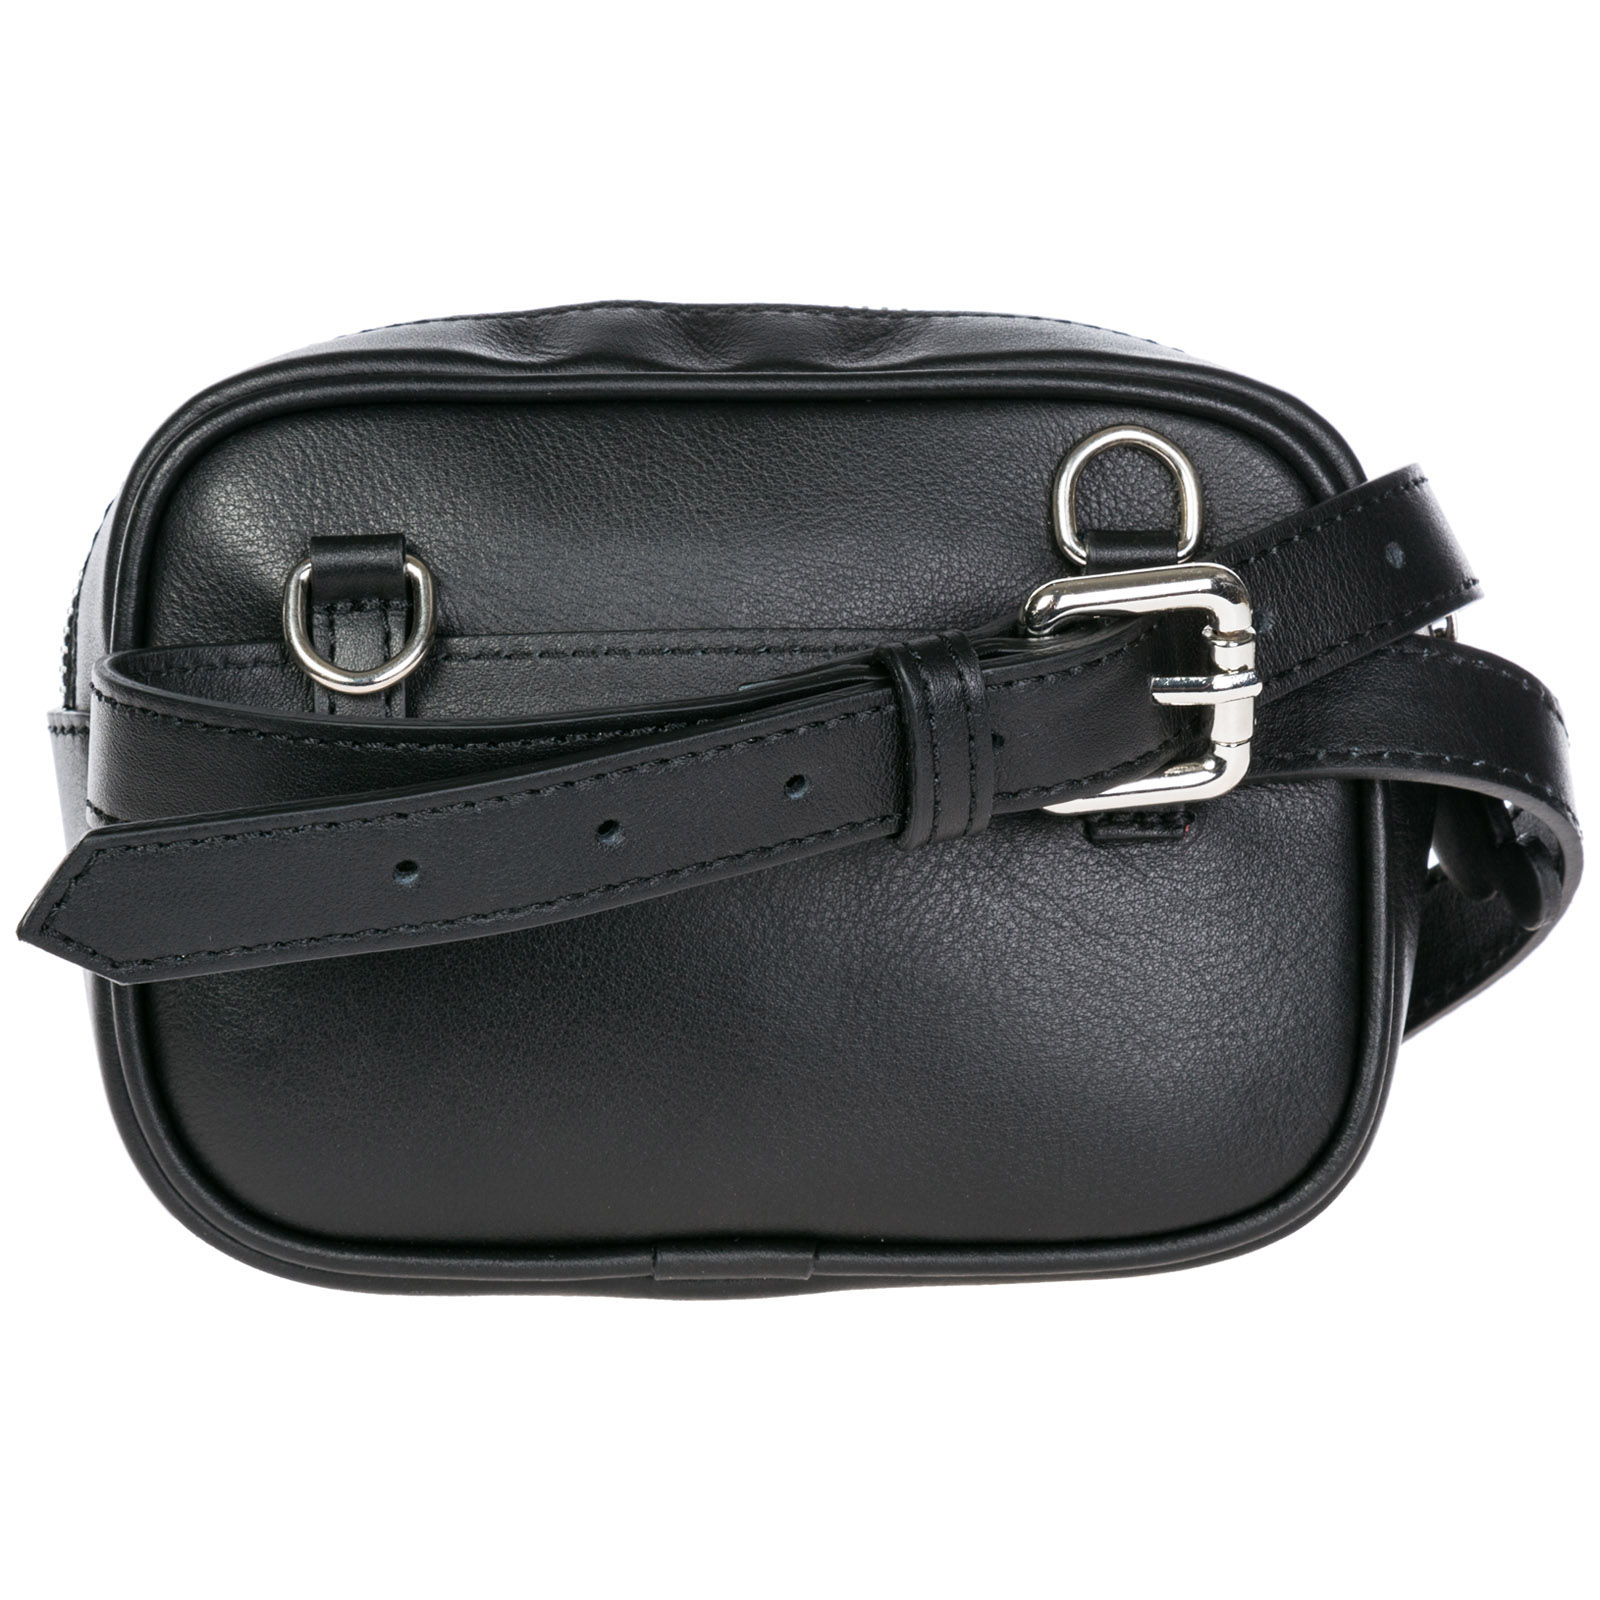 66219d648672 ... mouse Women's leather belt bum bag hip pouch disney mickey ...